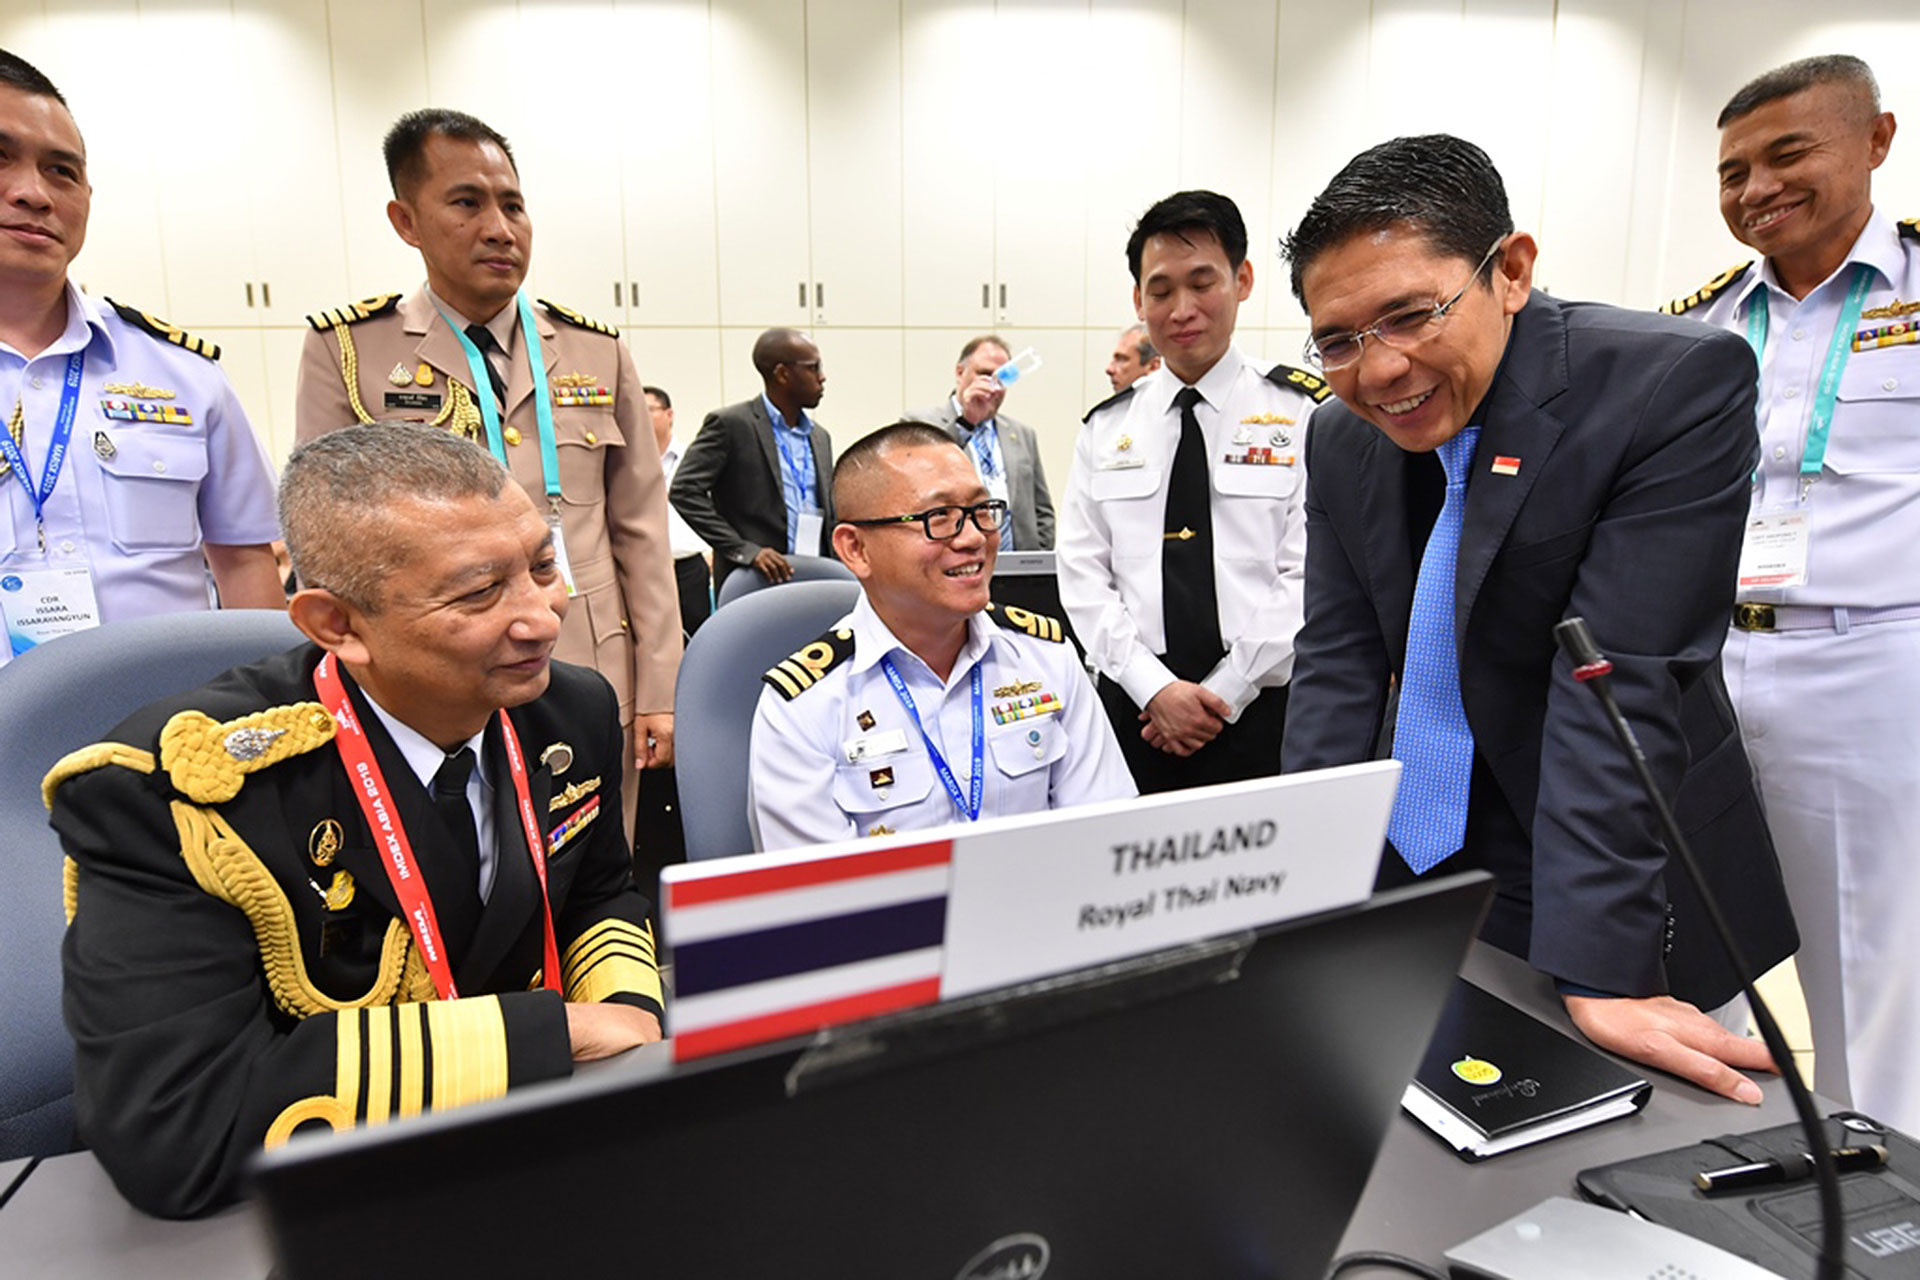 Dr Maliki interacting with international liaison officers from the Royal Thai Navy stationed in the IFC.